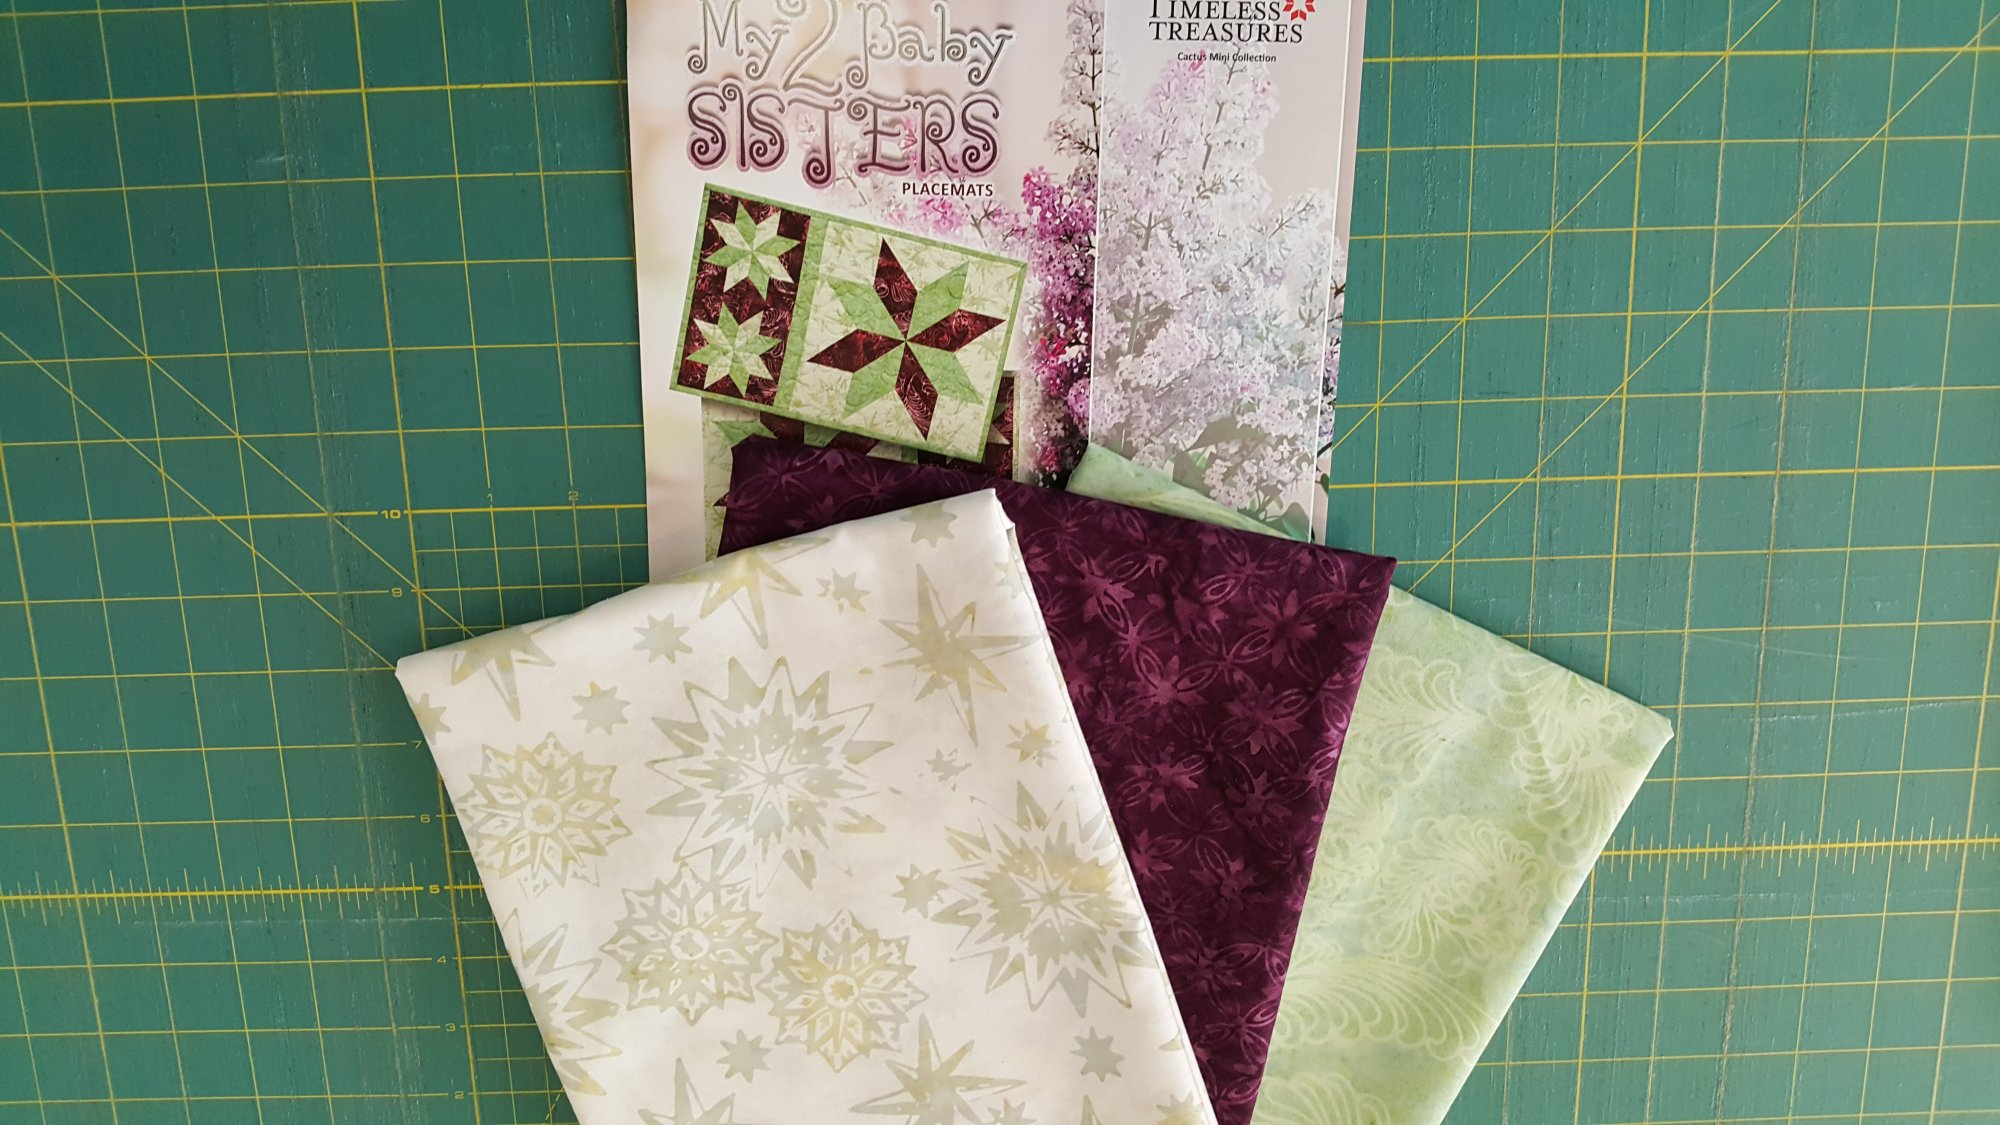 My 2 Baby Sisters Placemats Fabric Kit - A Judy Niemeyer Collection Fabric Set